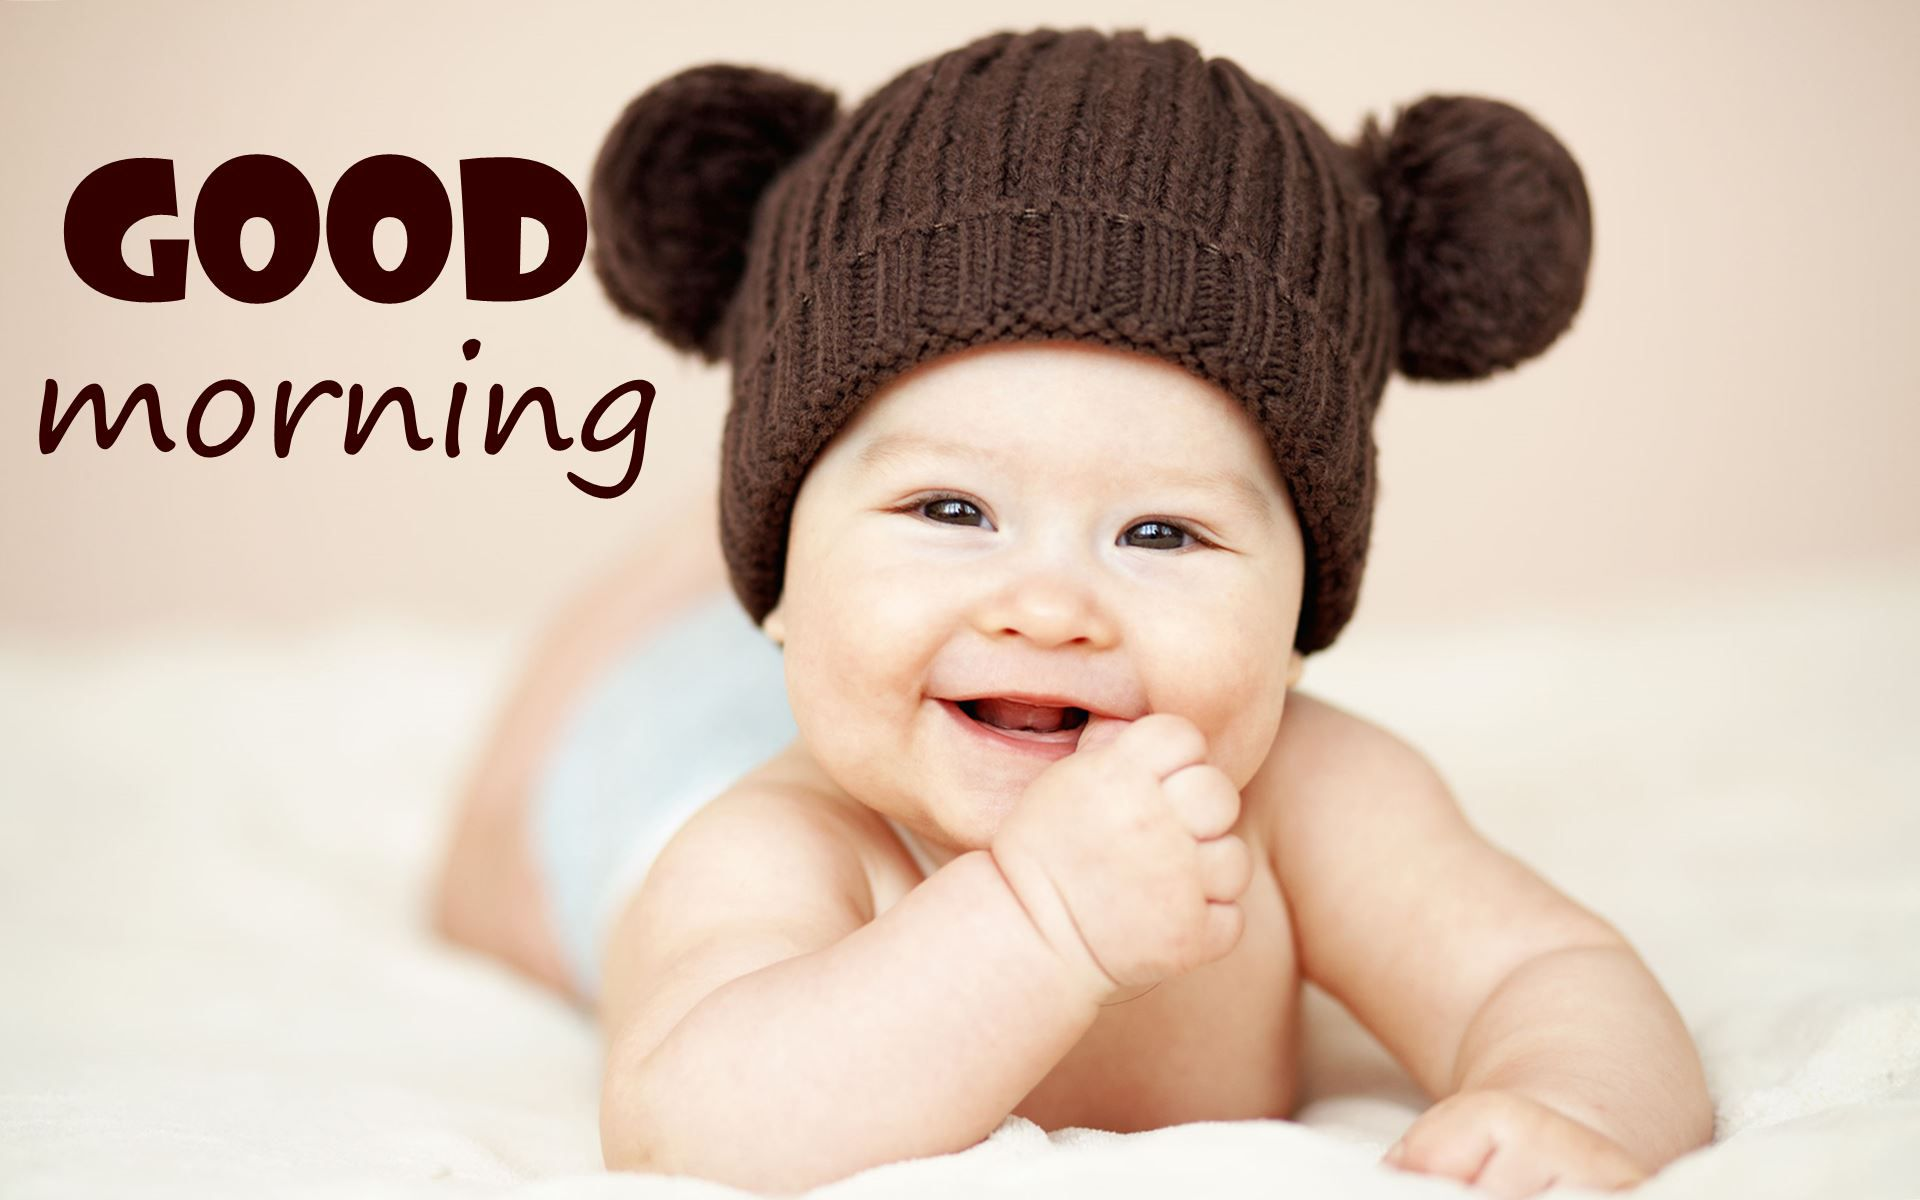 Baby Morning Wallpaper